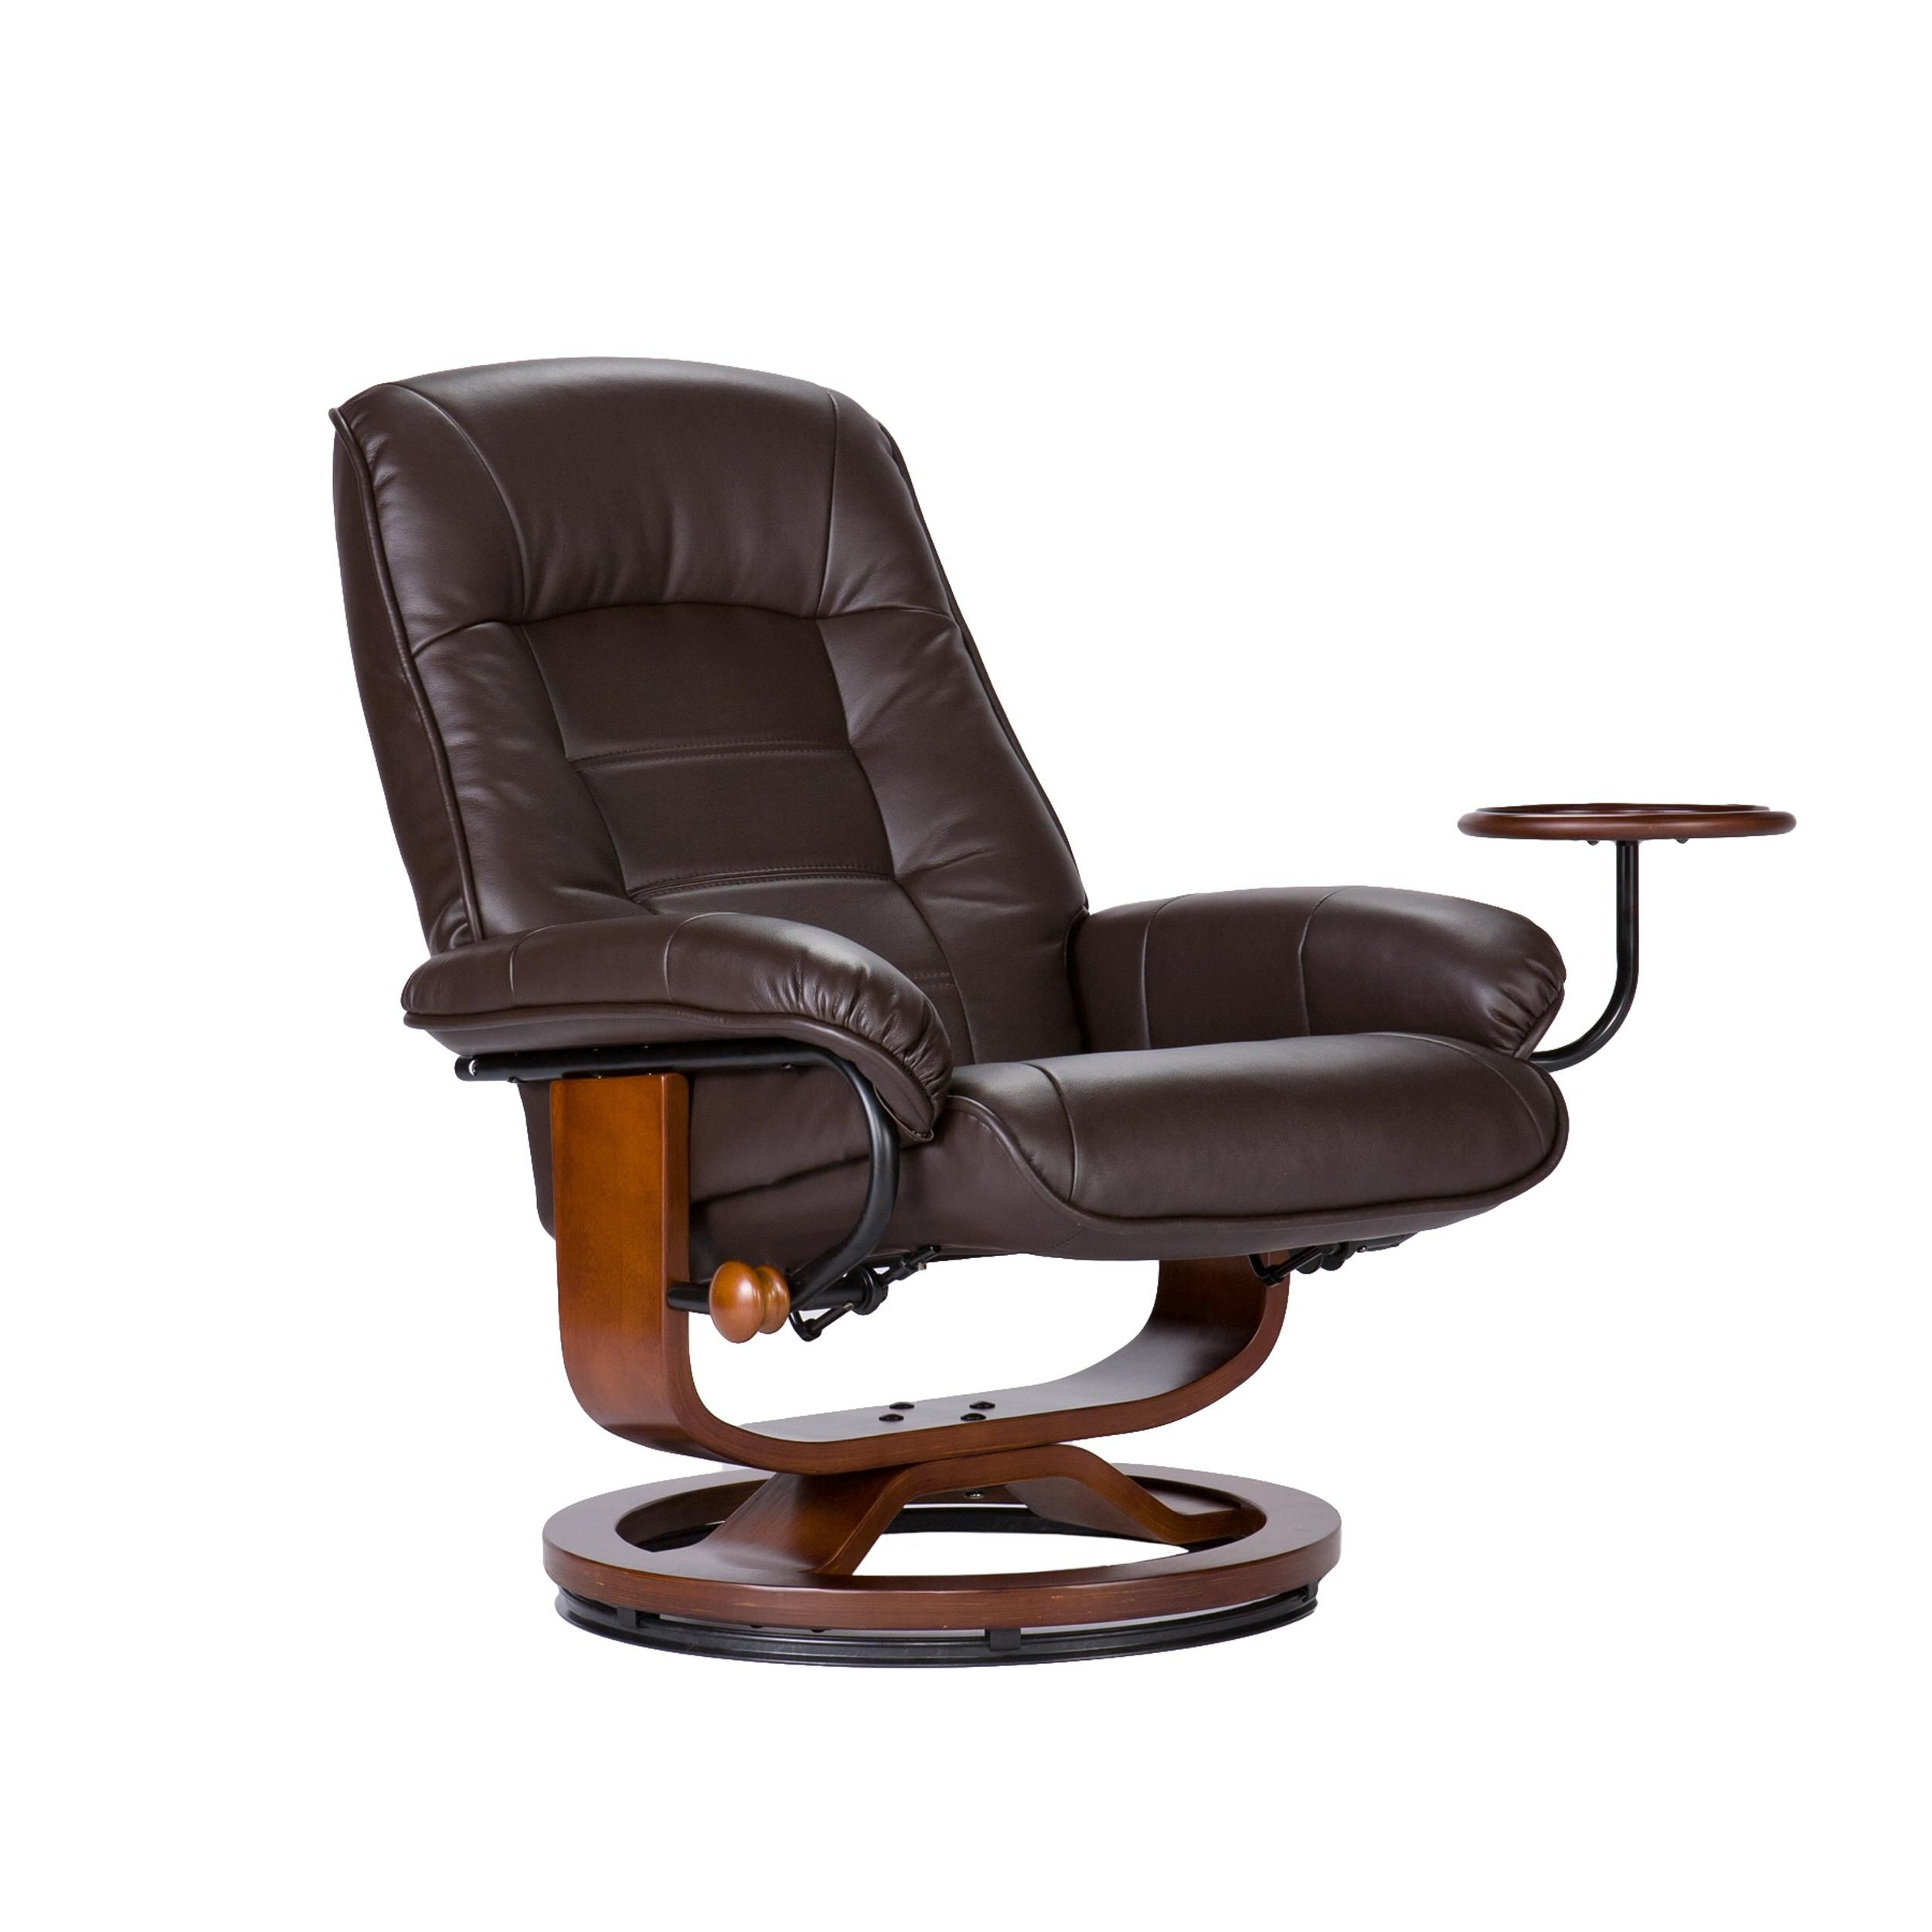 Amazon.com   Southern Enterprises Leather Recliner With Side Table And  Ottoman, Cafe Brown   Stressless Chairs